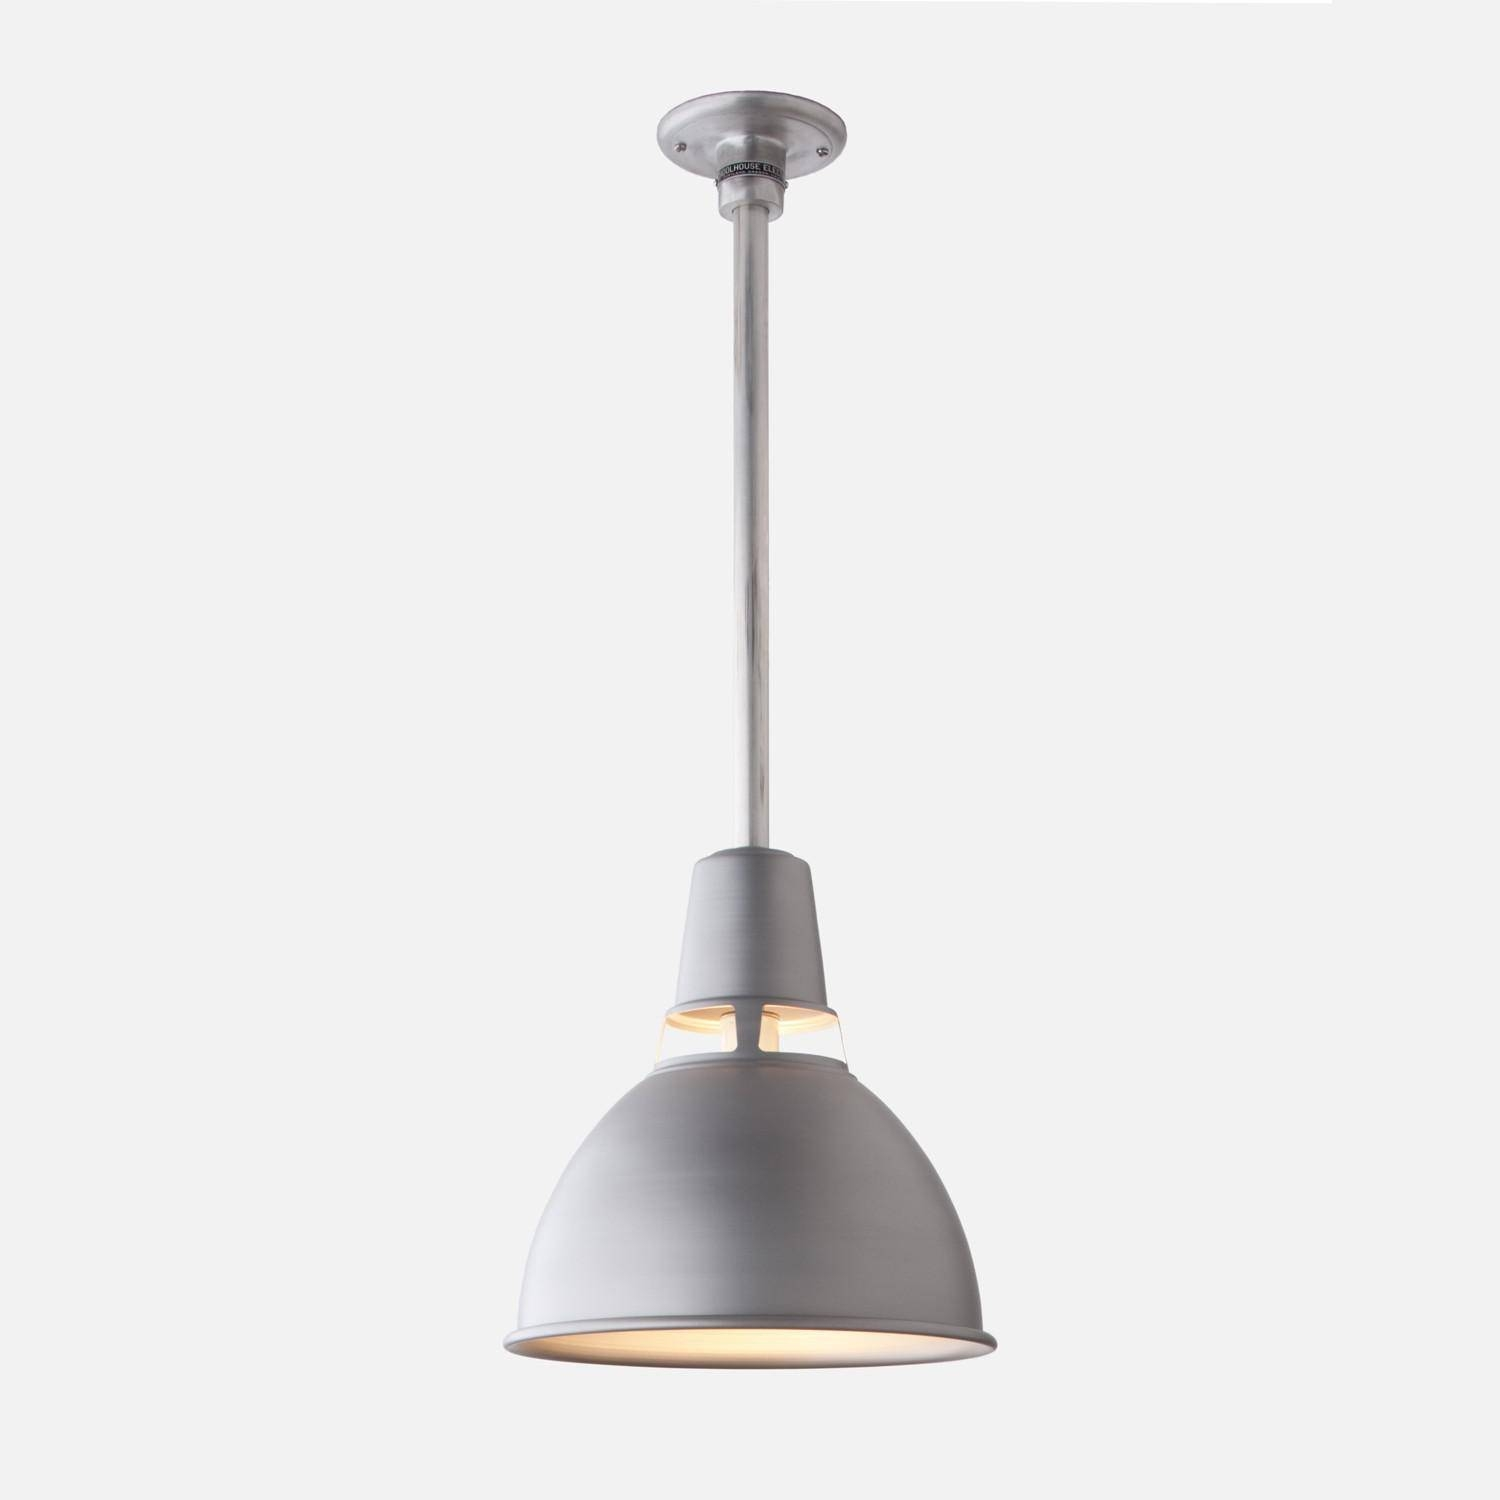 15 best collection of commercial pendant lights awesome commercial pendant light fixtures 63 with additional in commercial pendant lights image 1 of mozeypictures Choice Image